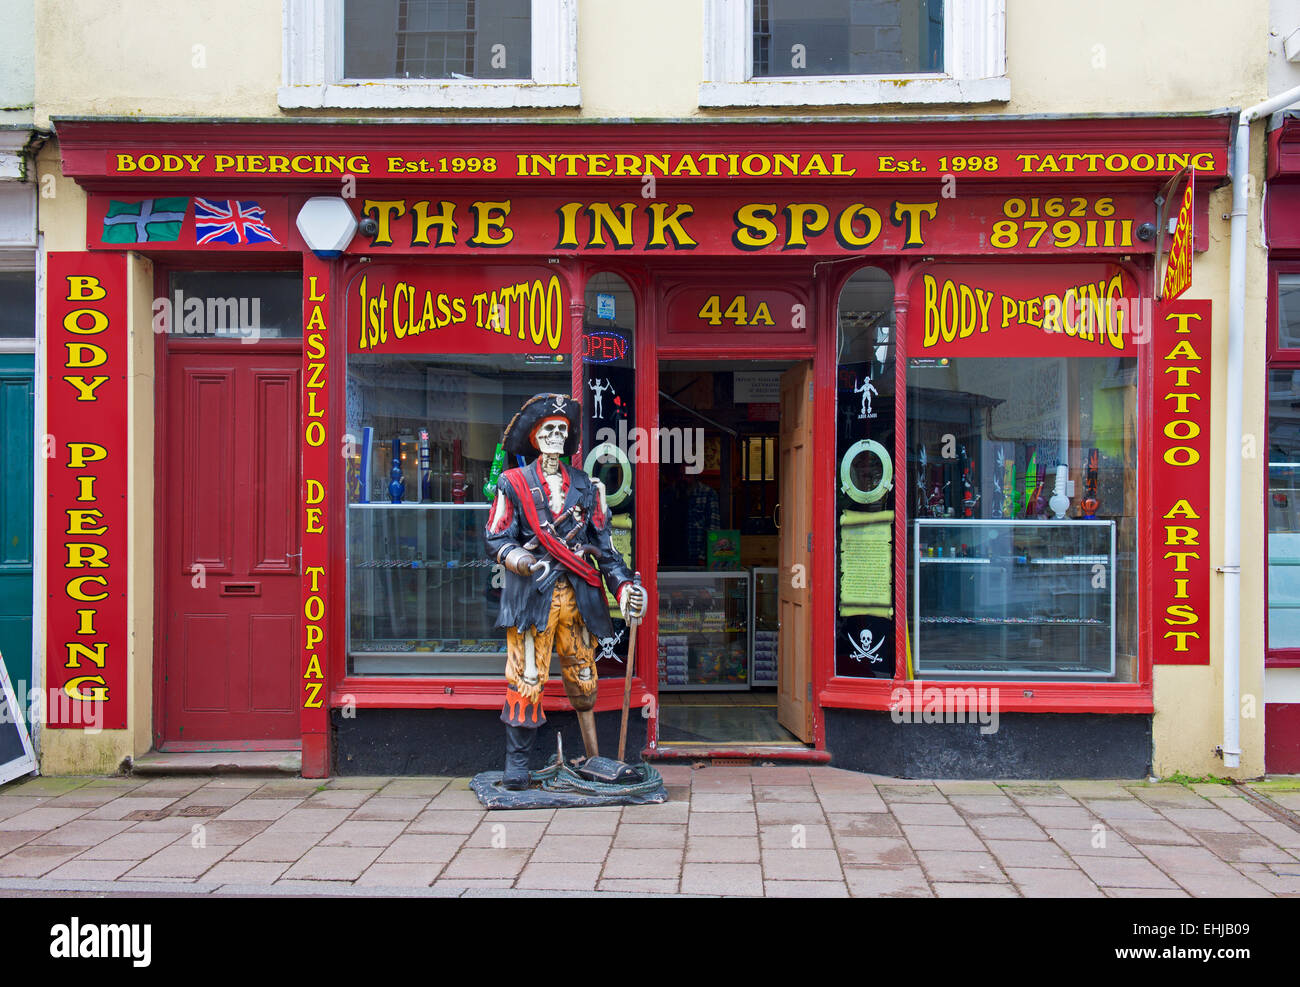 The Ink Spot, tattoo and body piercing shop, Teignmouth, Devon, England UK - Stock Image